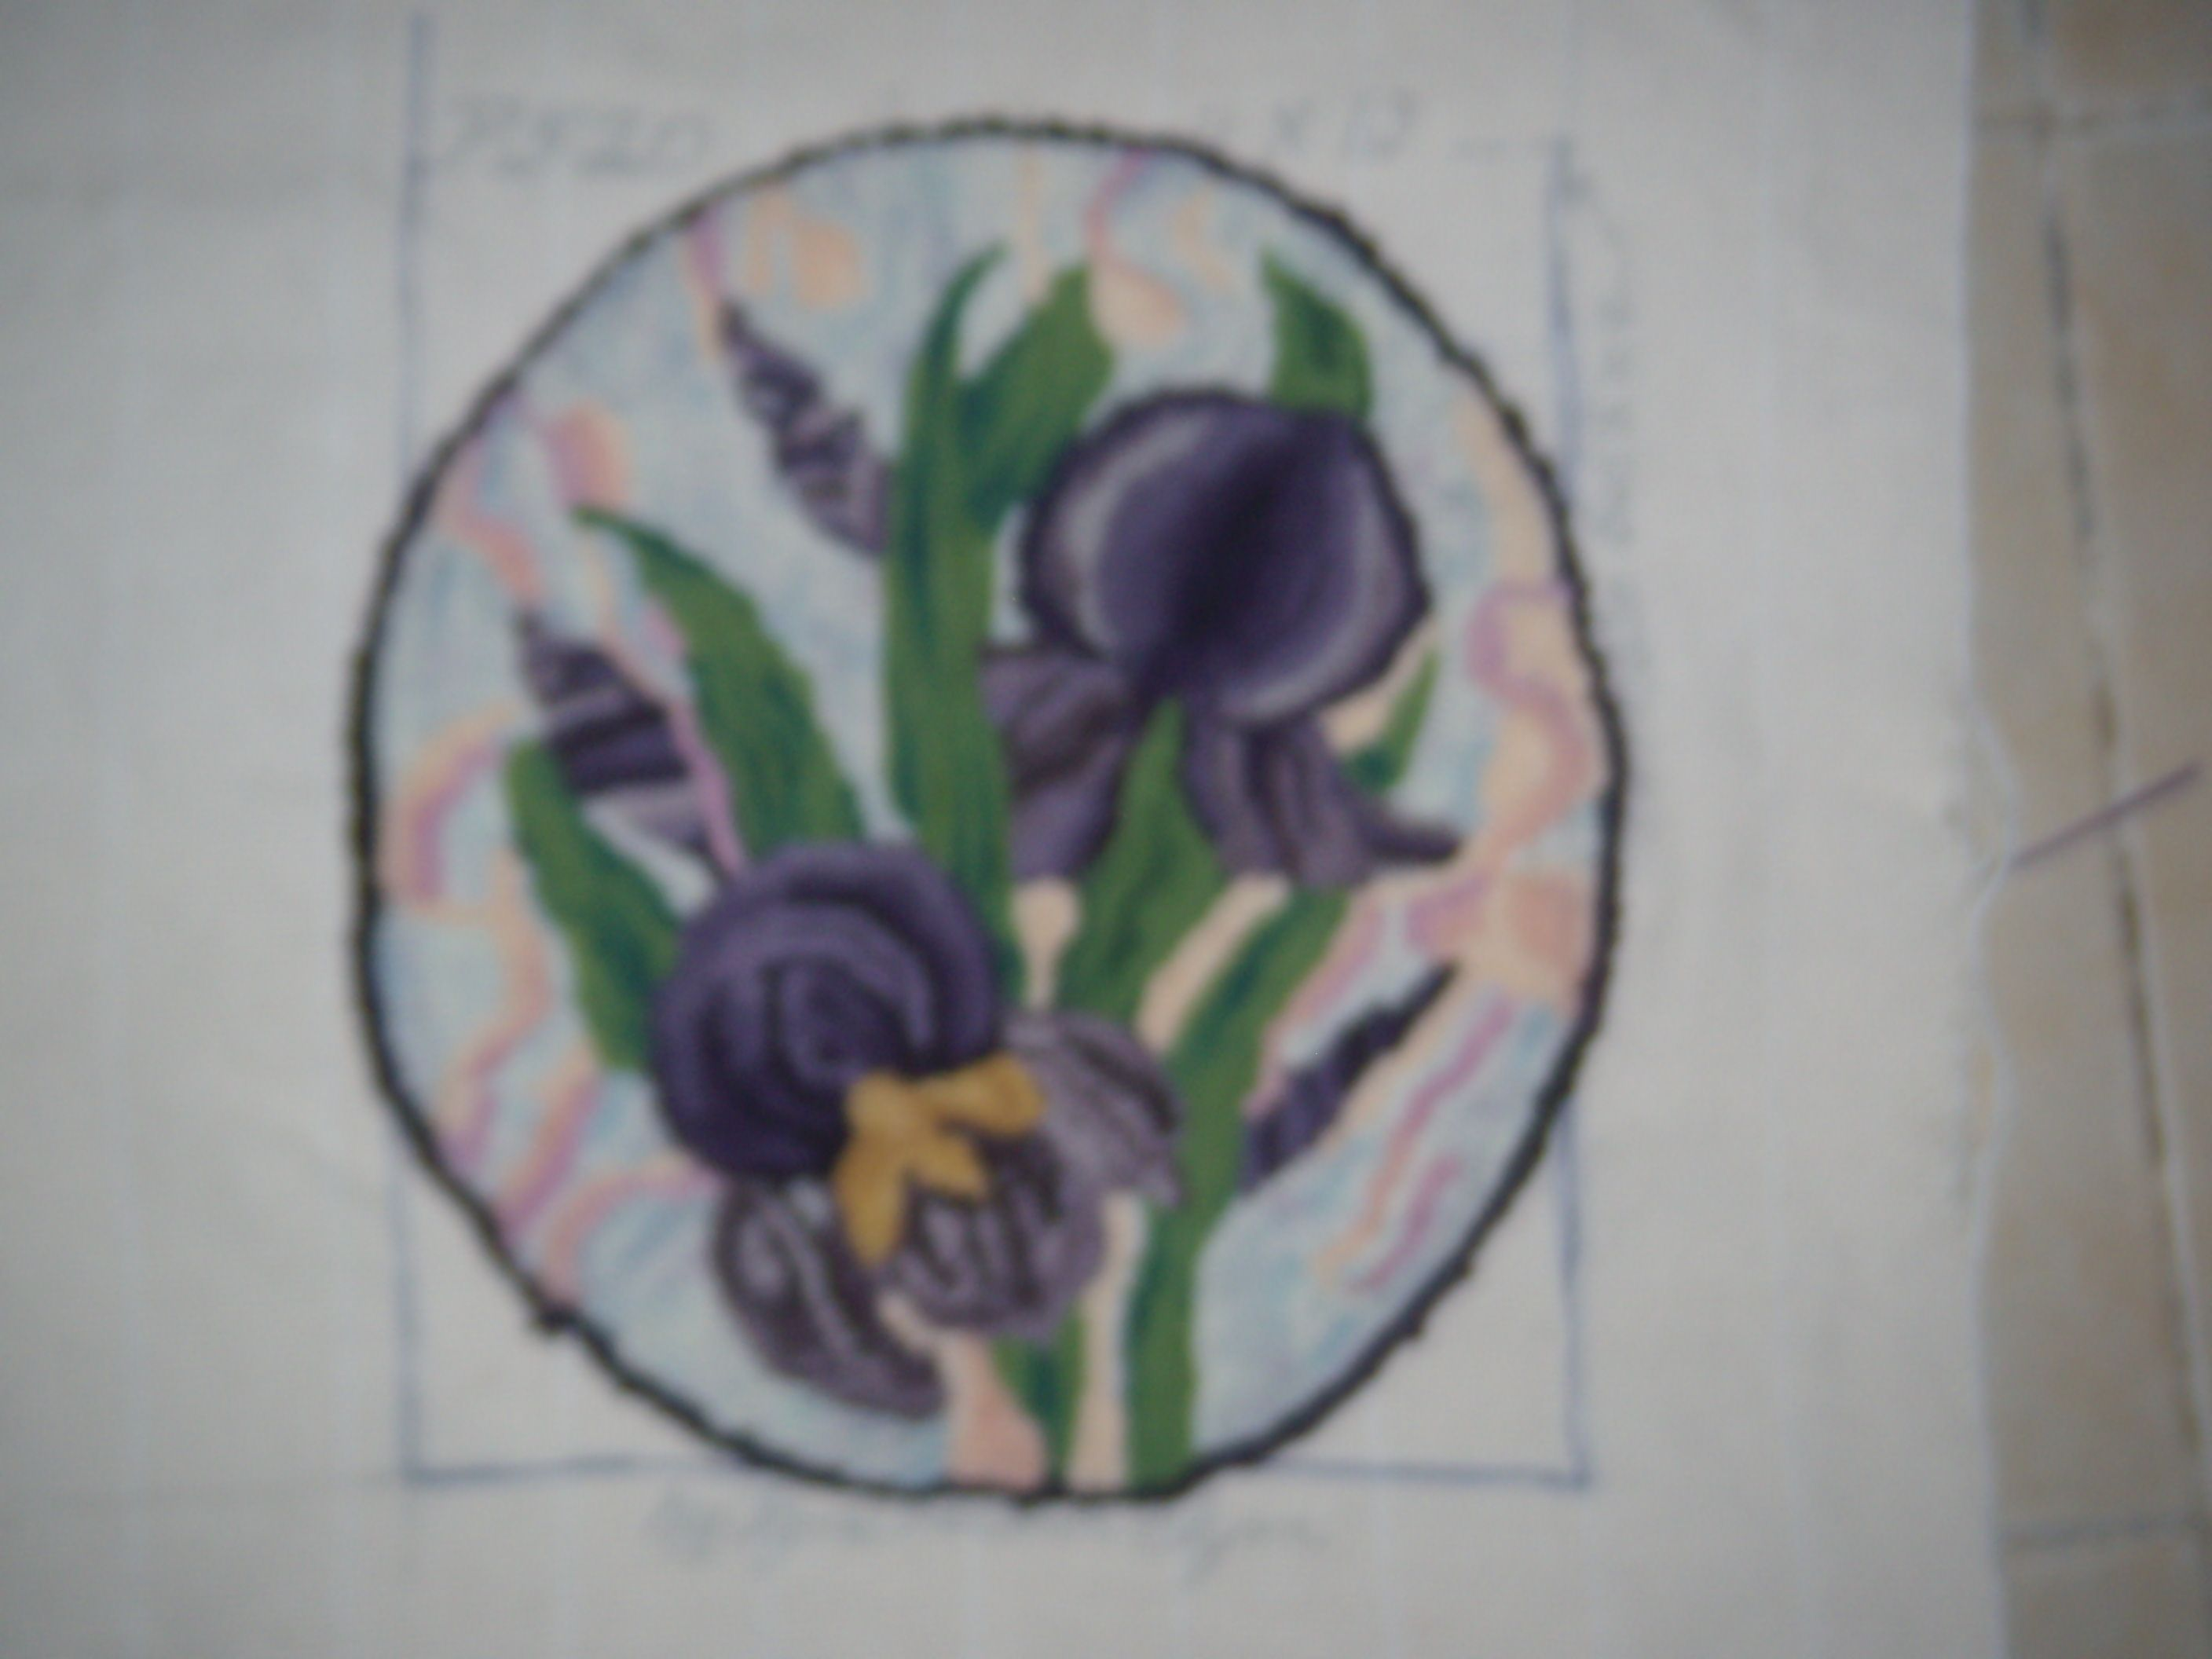 This is my first attempt at shading flowers. It was very challenging for me.